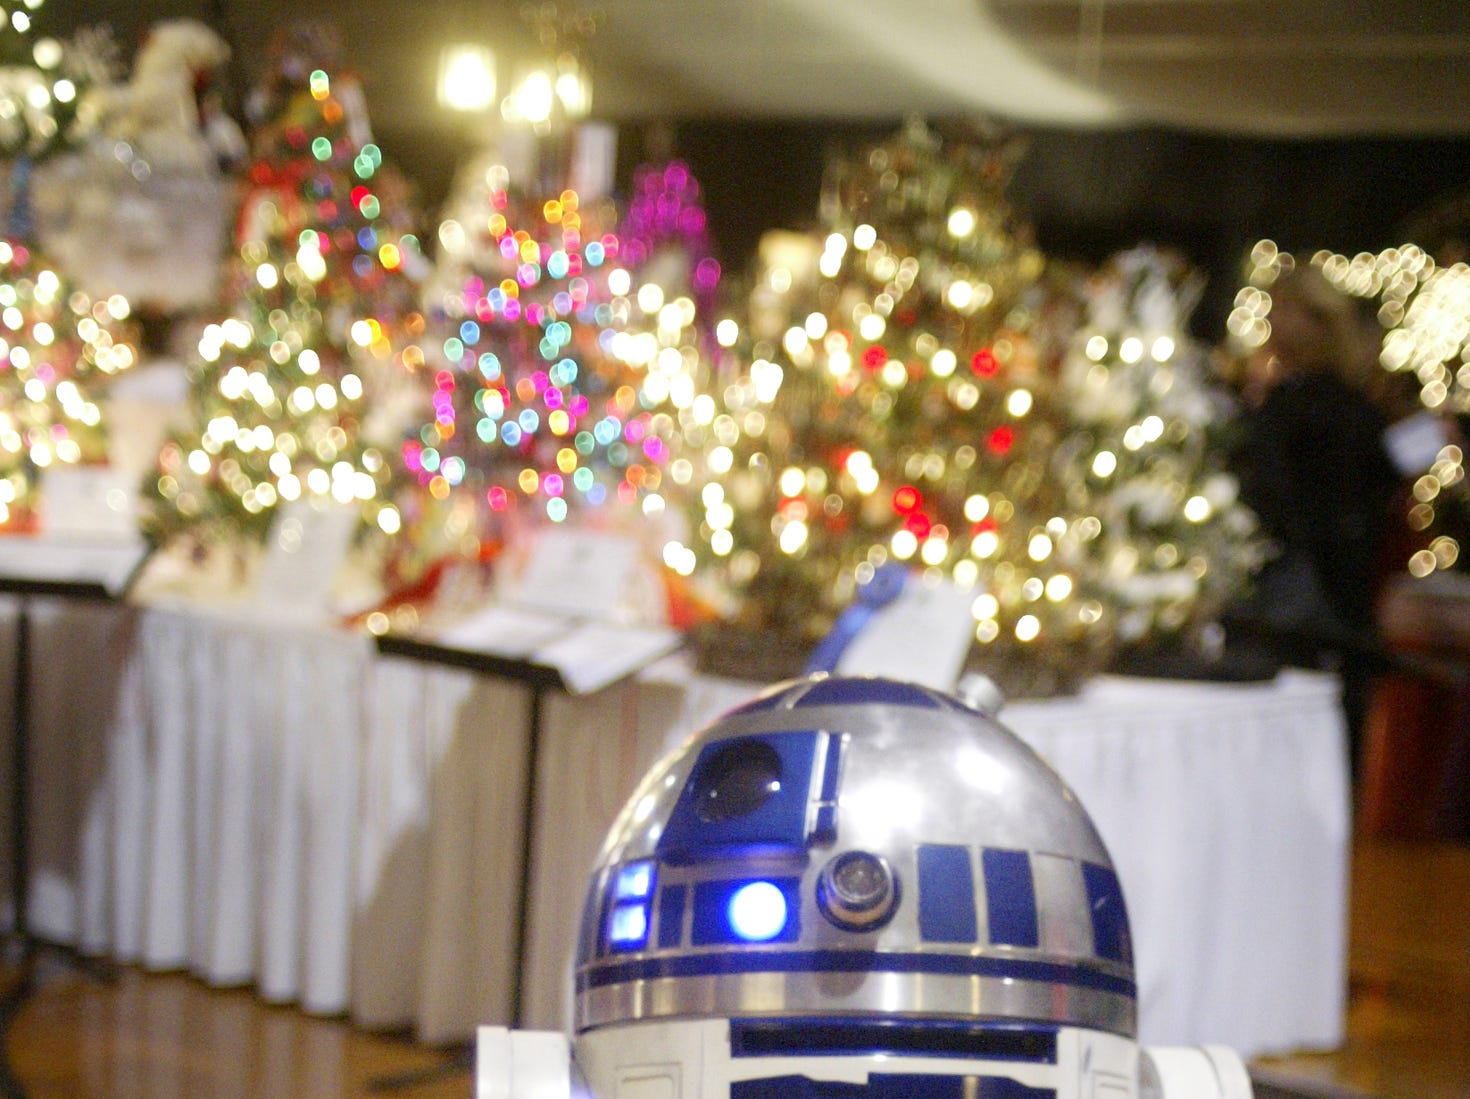 R2D2 made an appearance at the Festival of Trees charity event, Thursday, November 30, 2006, at the Sheboygan Armory, in Sheboygan, Wis.